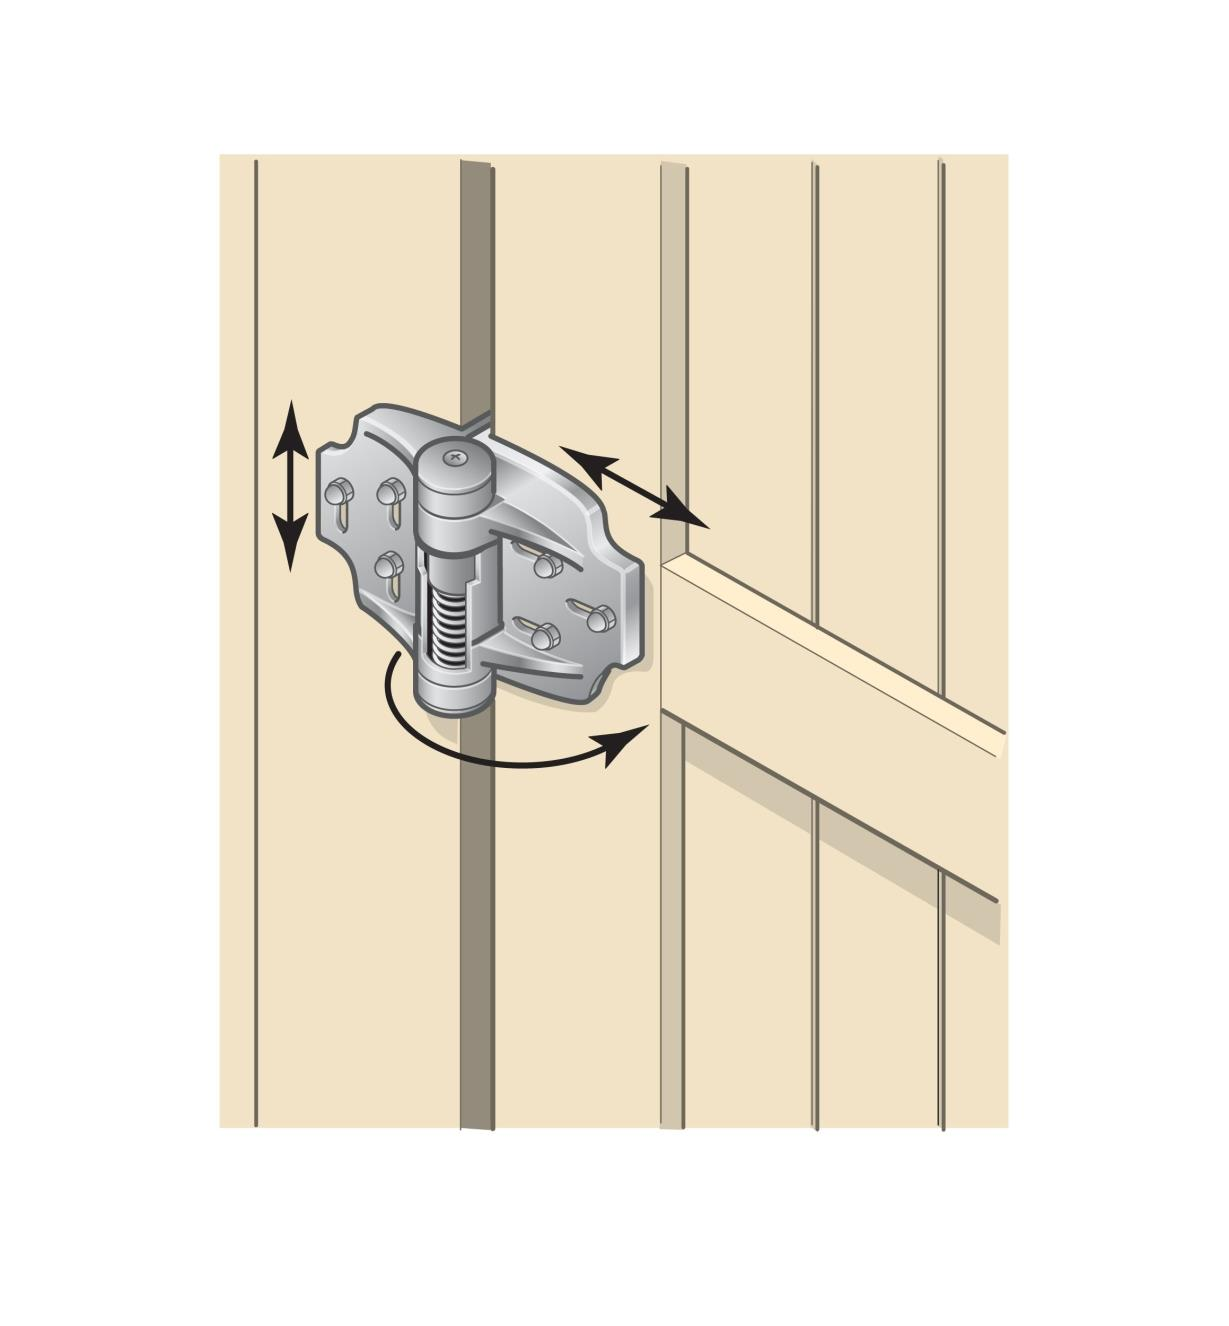 Illustration of multi-fit hinge installed on a gate